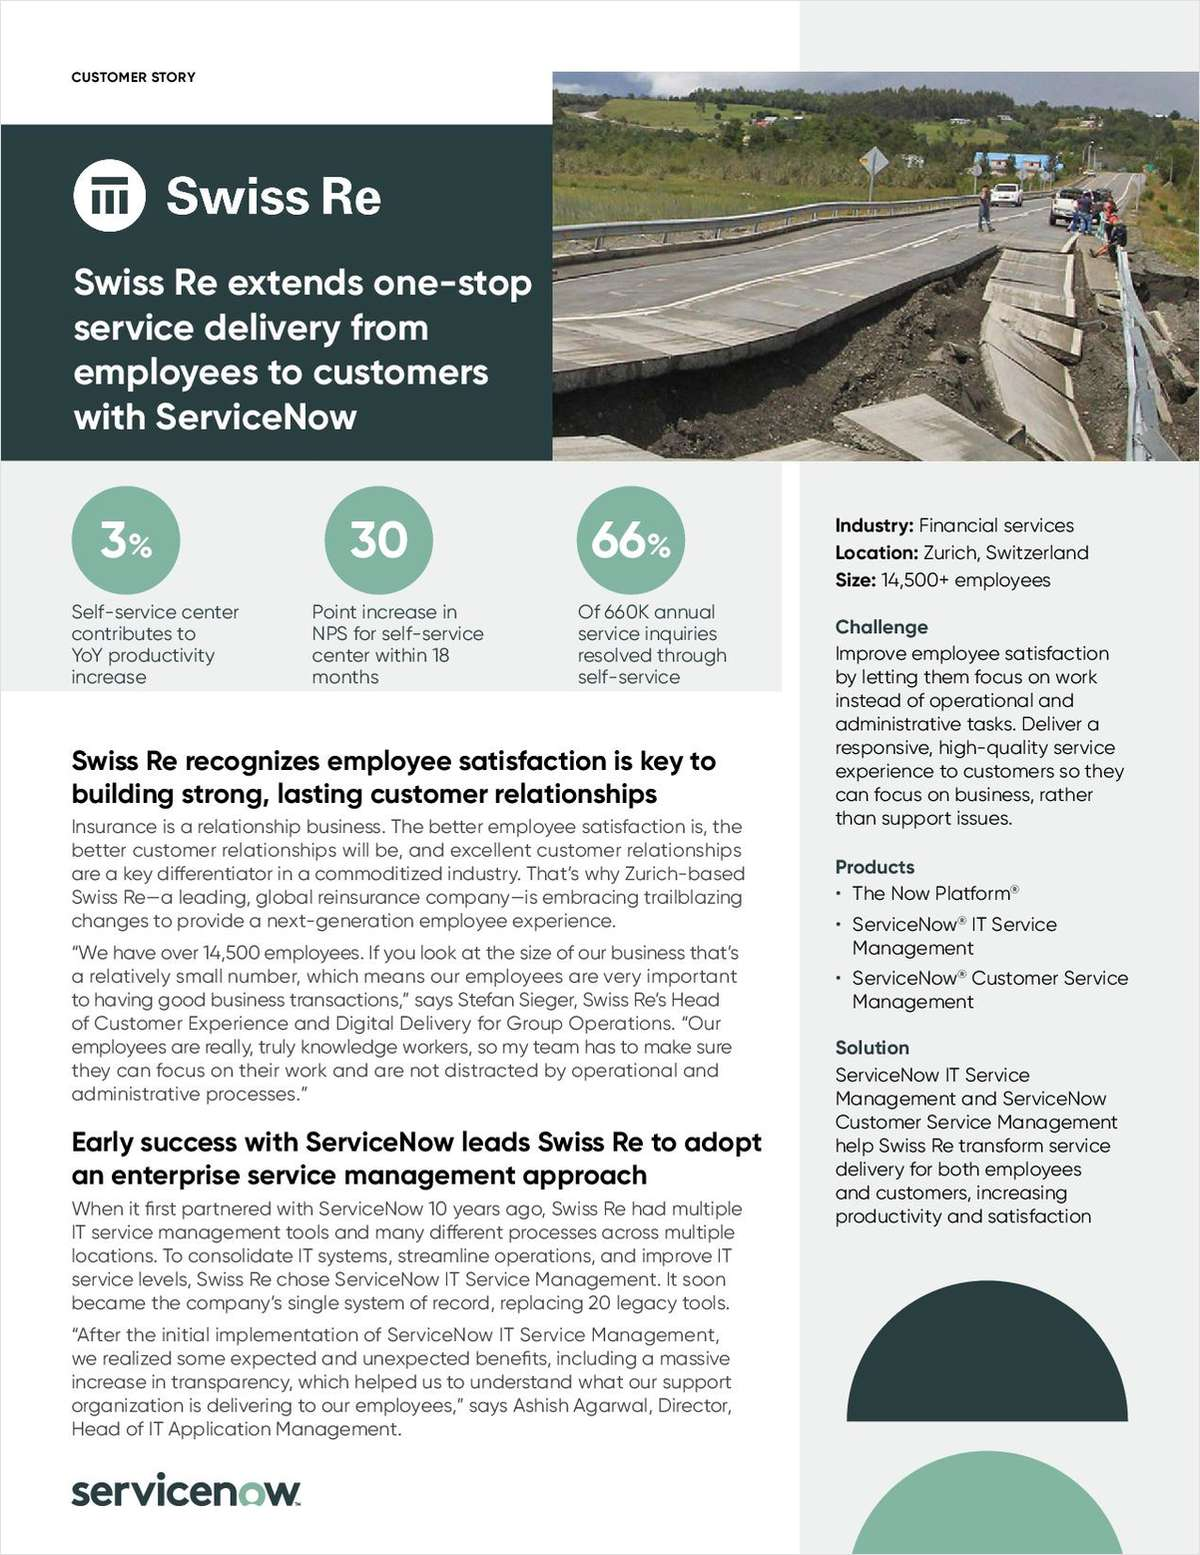 Swiss Re Extends One-Stop Service Delivery From Employees to Customers with ServiceNow